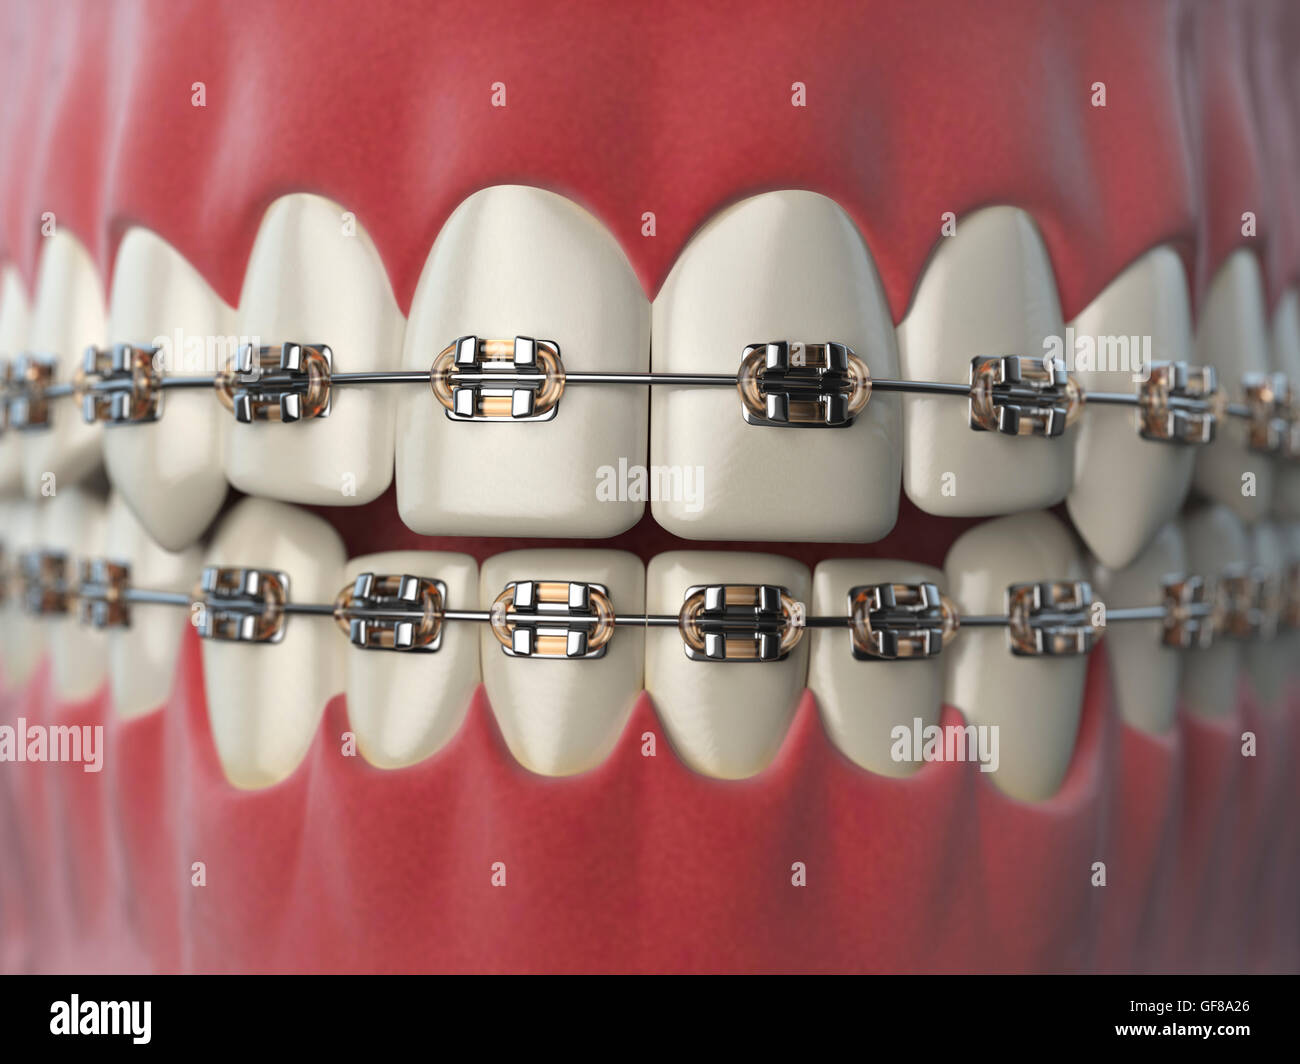 teeth with braces or brackets in open human mouth dental care concept 3d illustration